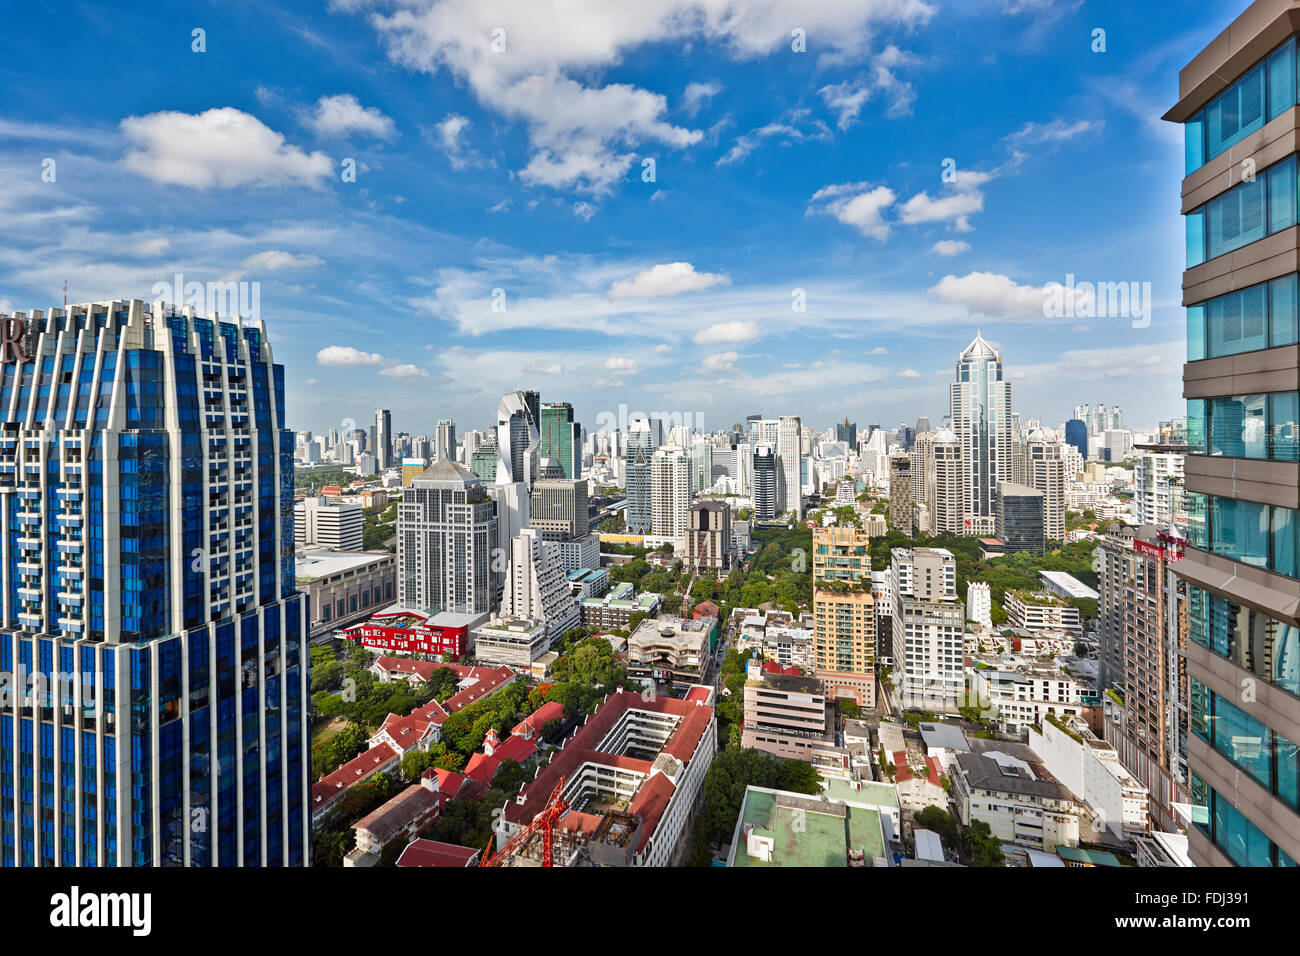 Ansicht der Lumphini verstiess. Pathum Wan District, Bangkok, Thailand. Stockbild